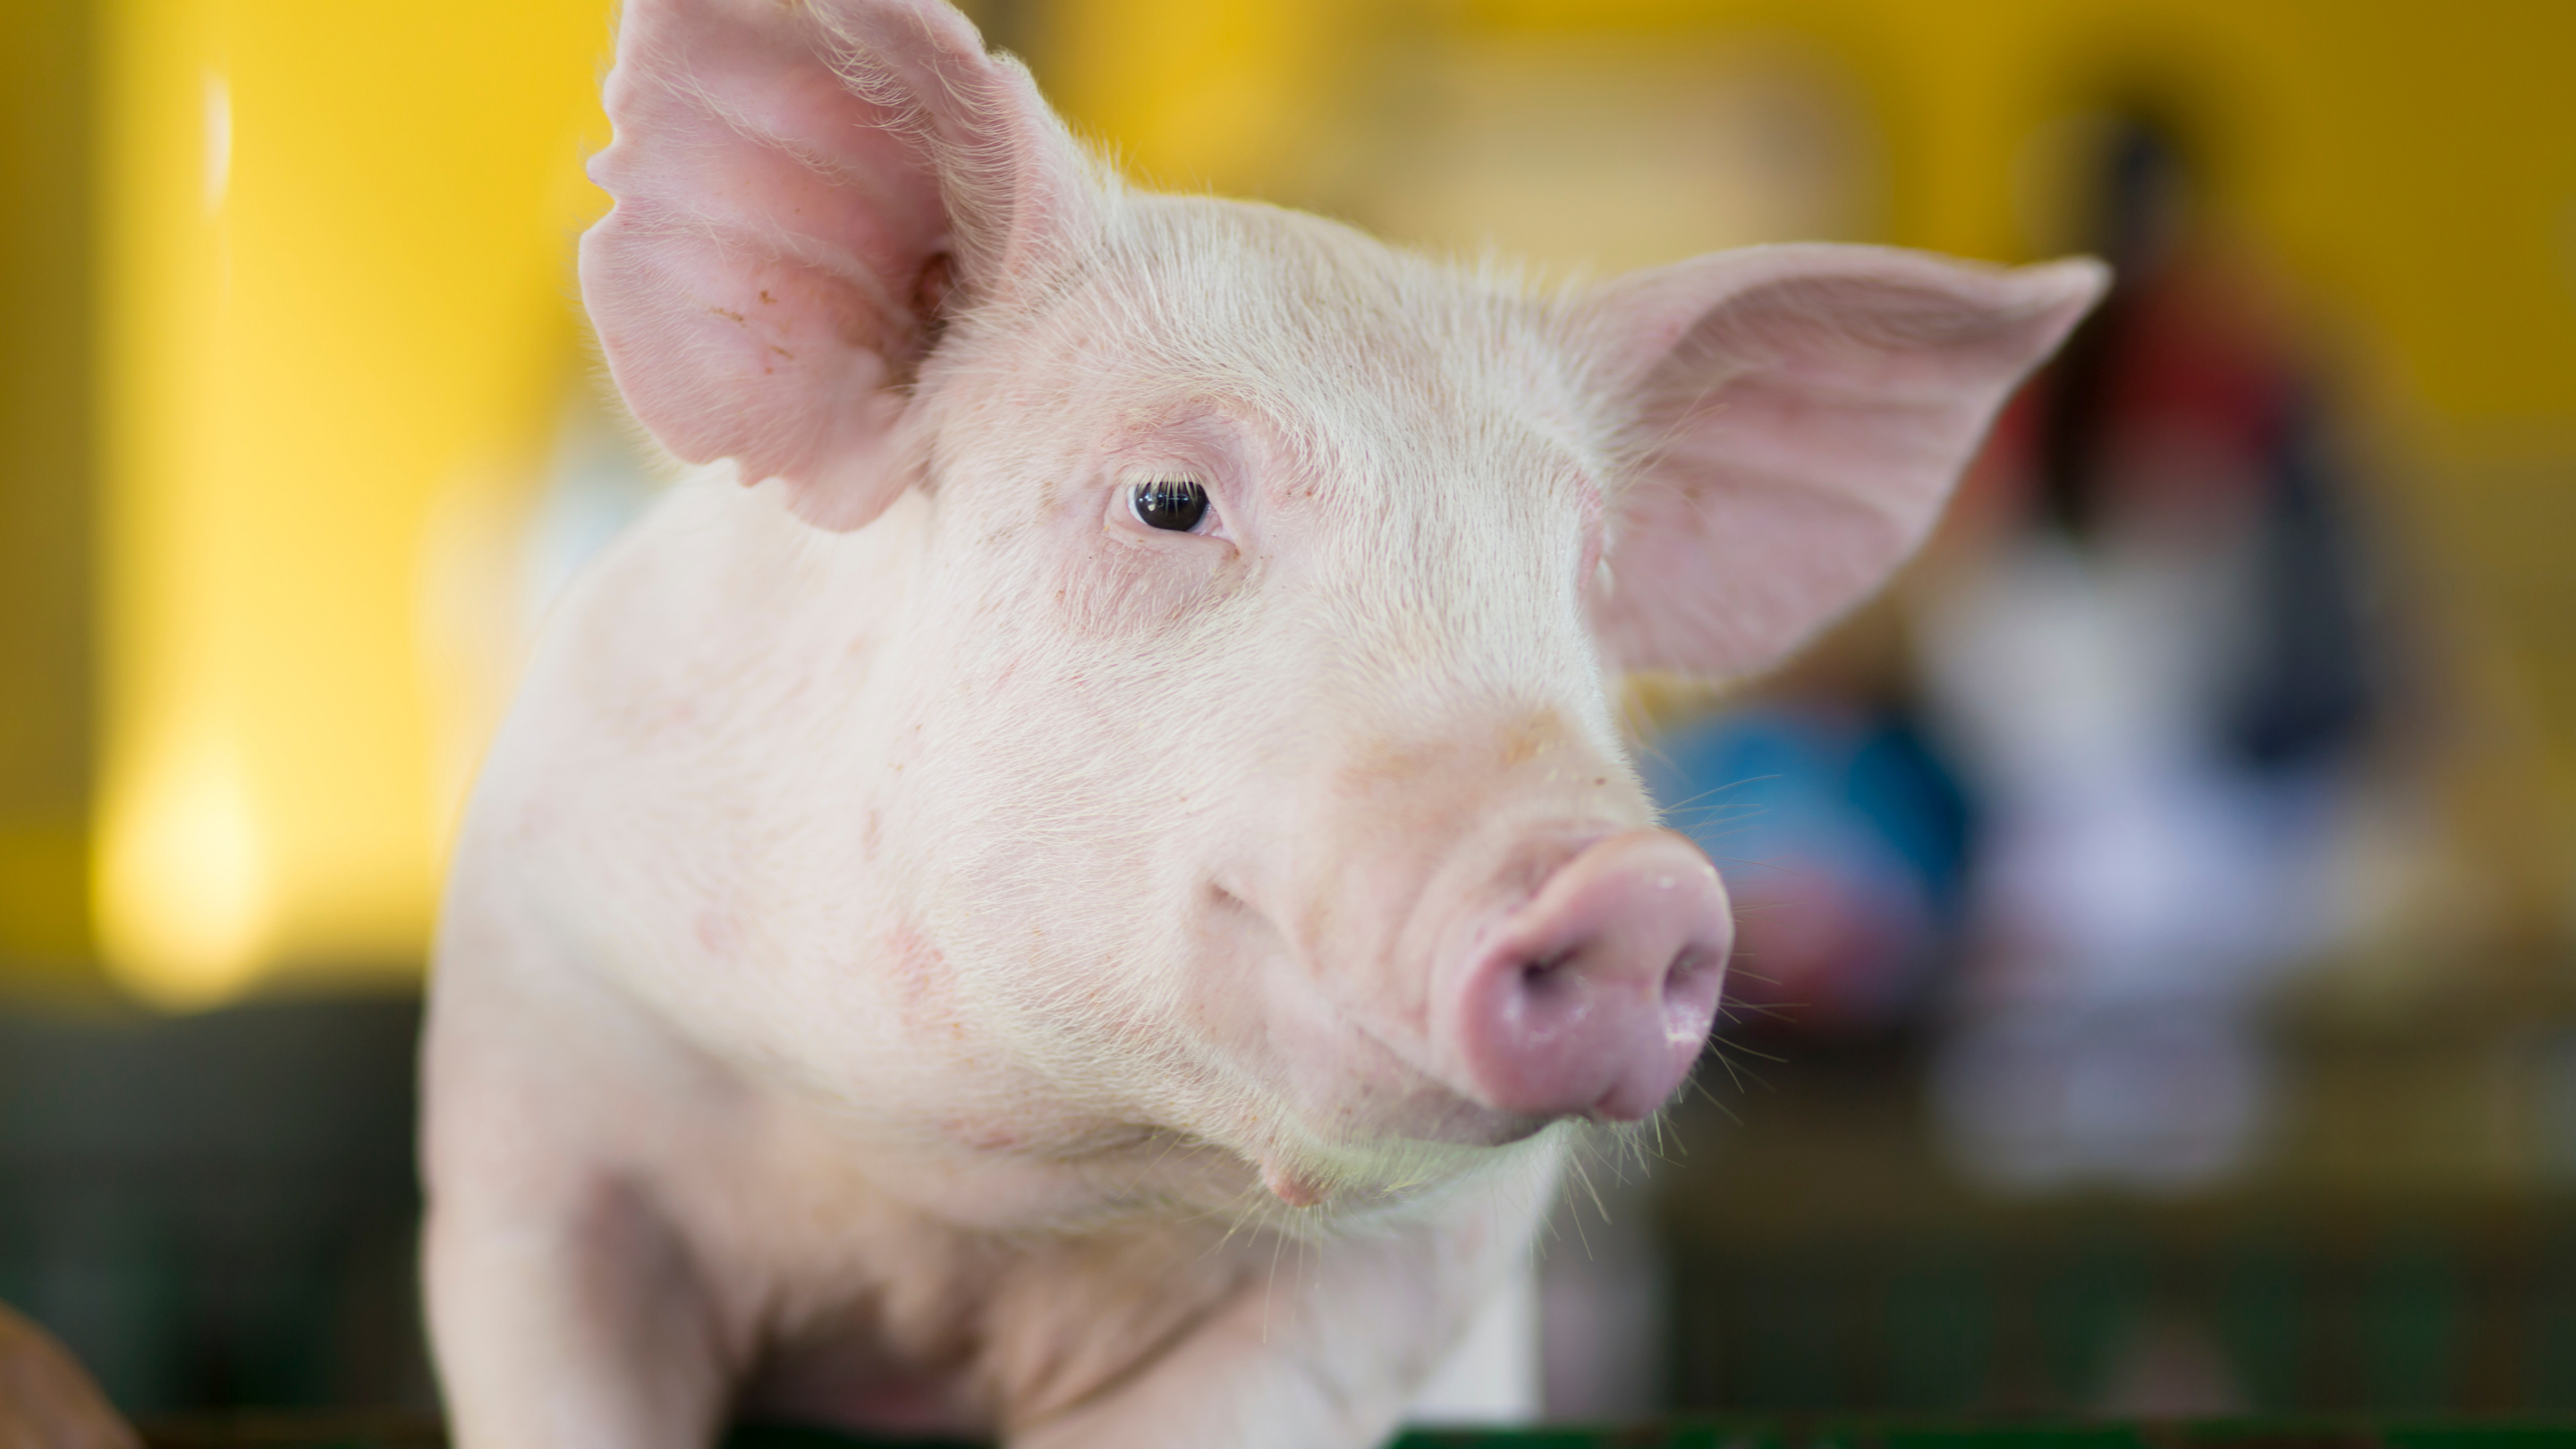 Photo of a clean, pink pig's face